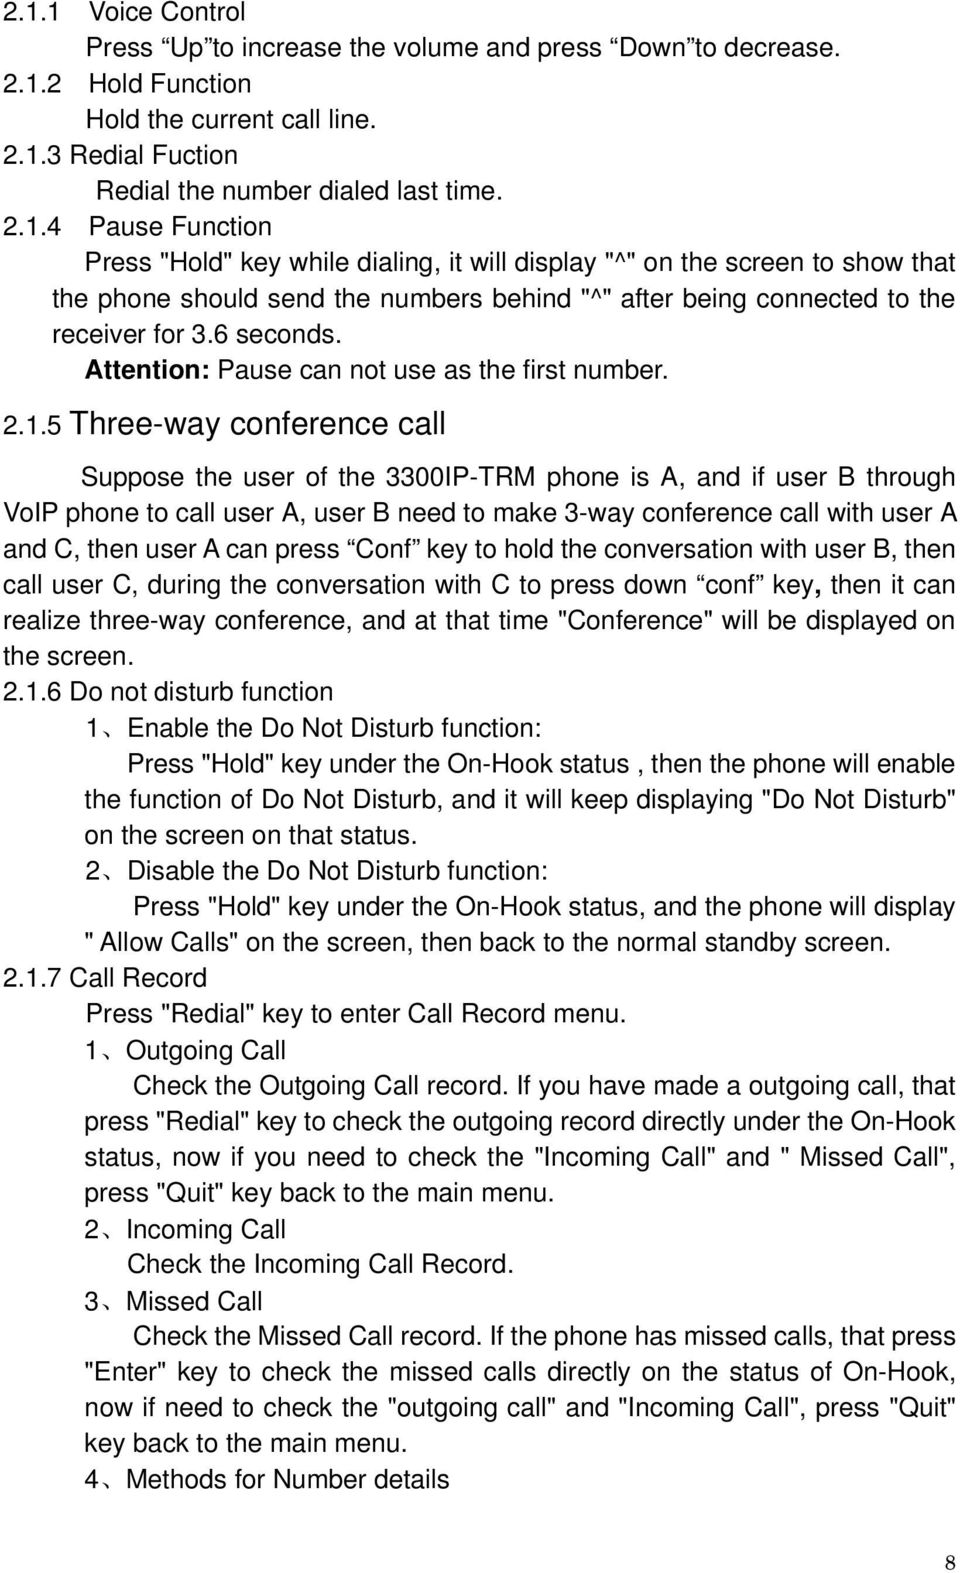 5 Three-way conference call Suppose the user of the 3300IP-TRM phone is A, and if user B through VoIP phone to call user A, user B need to make 3-way conference call with user A and C, then user A